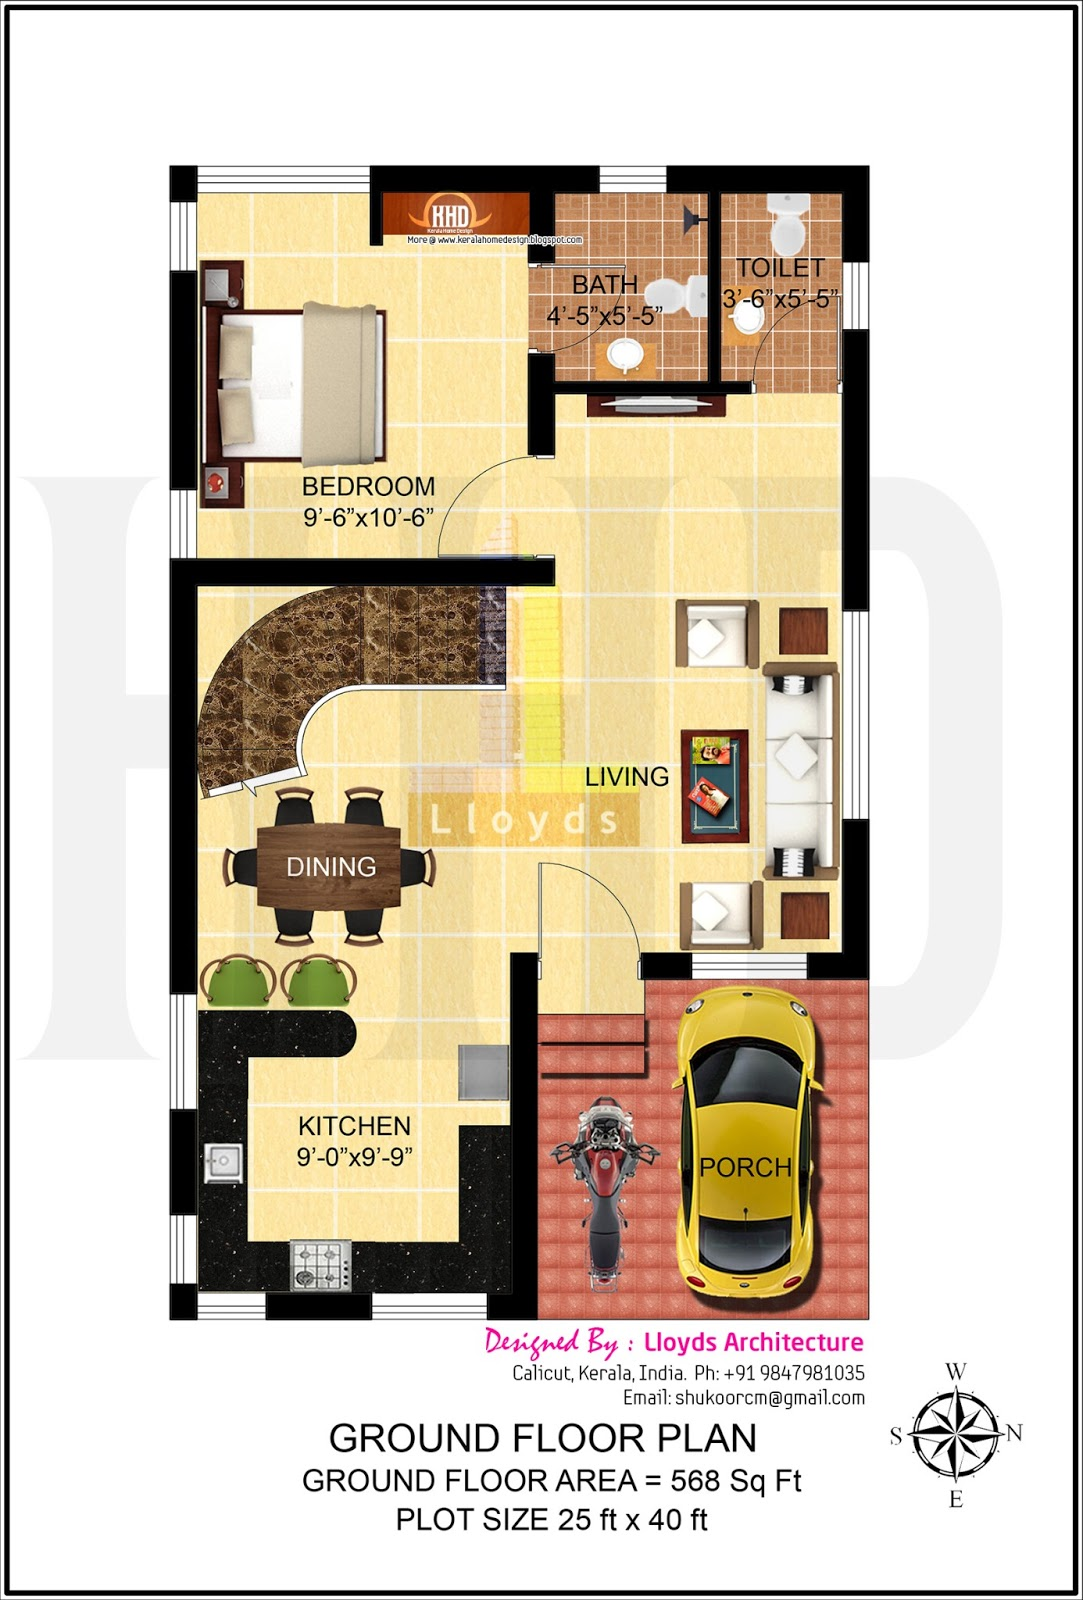 4 bedroom house plan in less that 3 cents home kerala plans for 3 floor house design